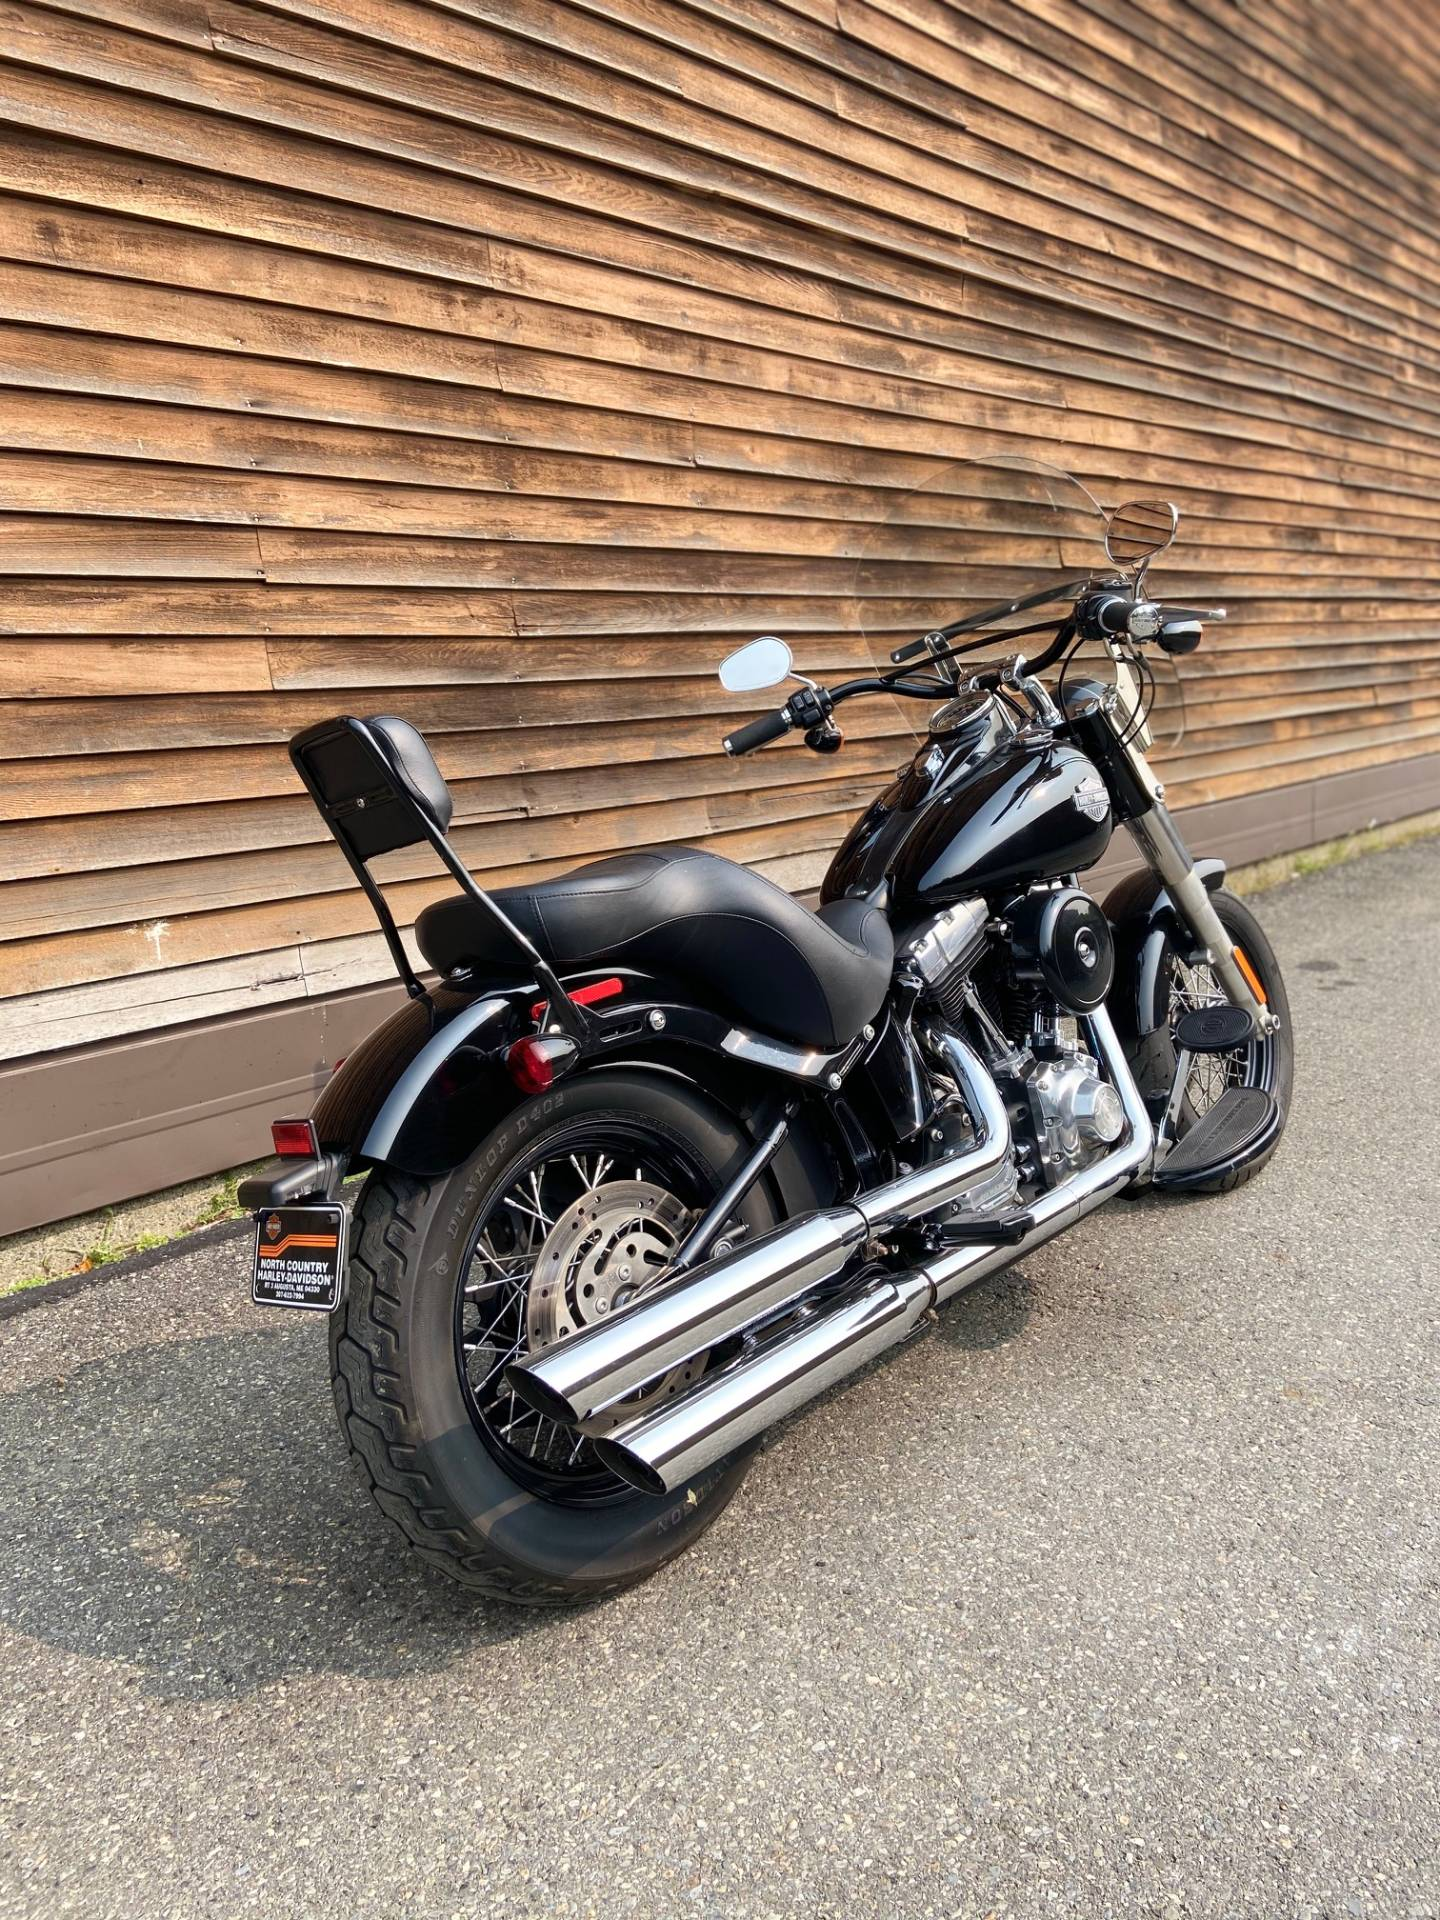 2012 Harley-Davidson Softail Slim in Augusta, Maine - Photo 2